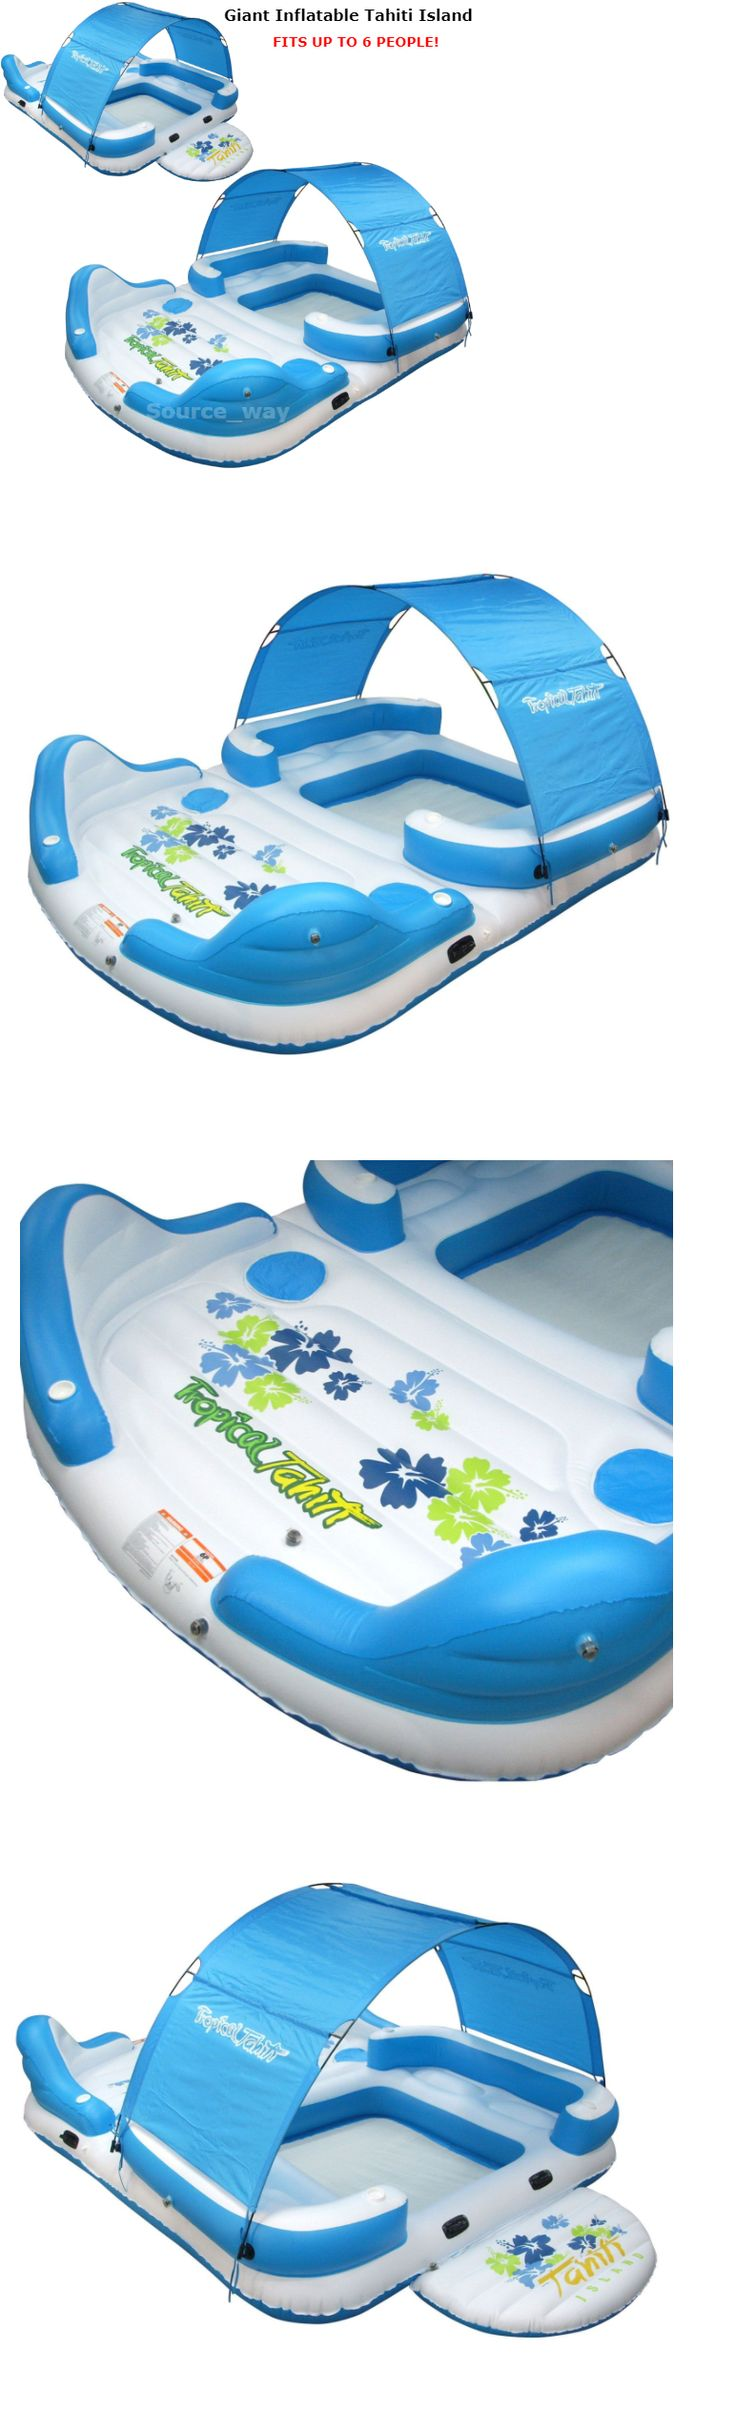 Bestway Coolerz X5 Seven Person Floating Canopy Island Seat - Floats and rafts 181055 new giant inflatable 6 person floating canopy island pool lake party